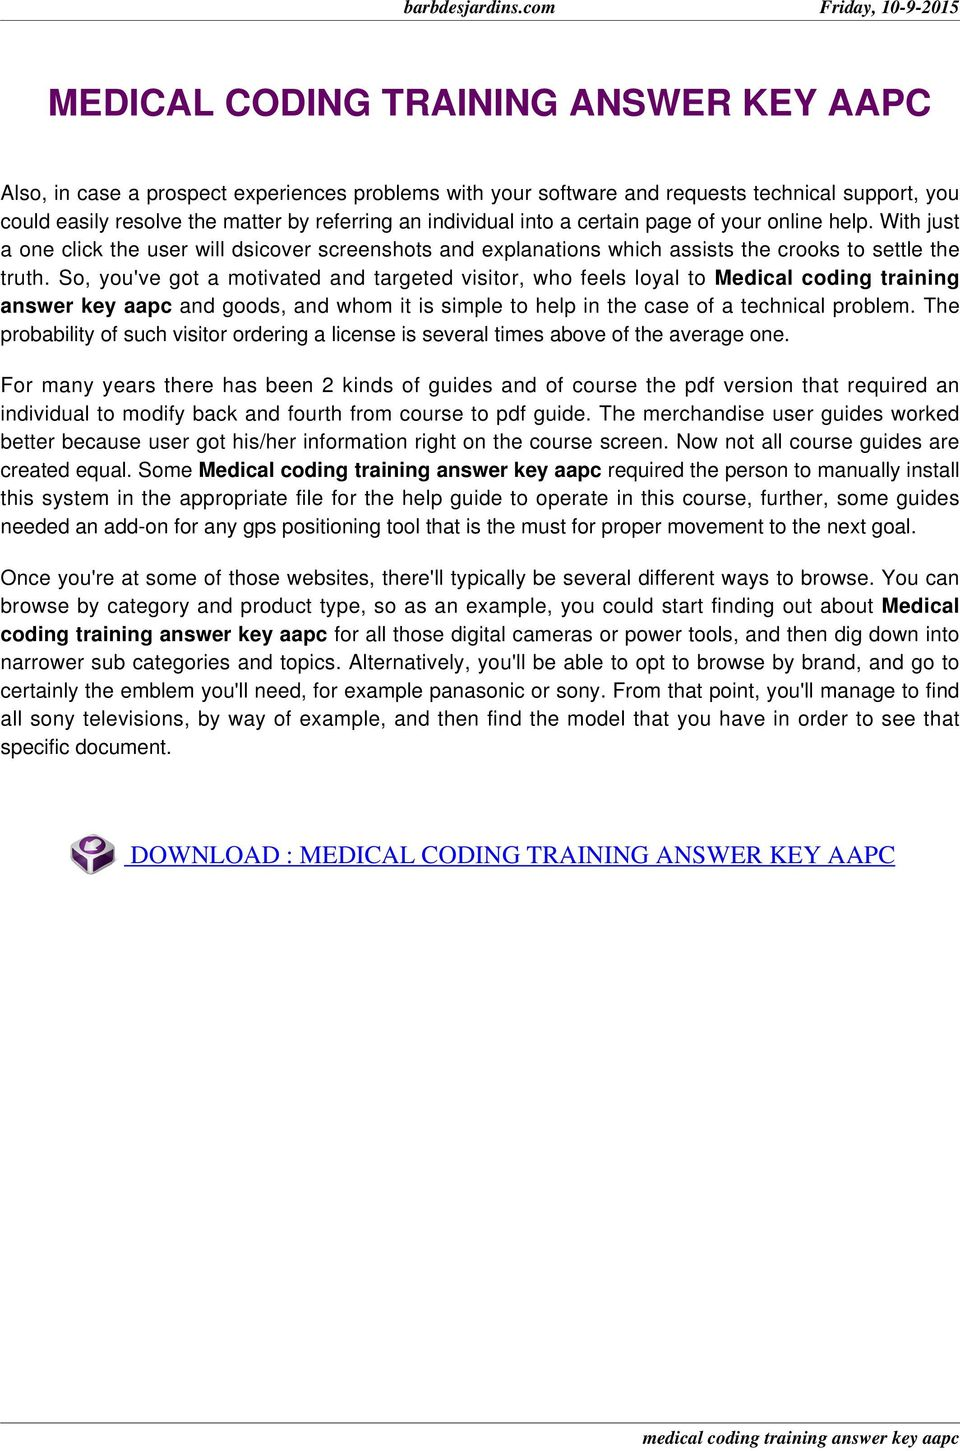 Medical coding training answer key aapc pdf so youve got a motivated and targeted visitor who feels loyal to fandeluxe Images